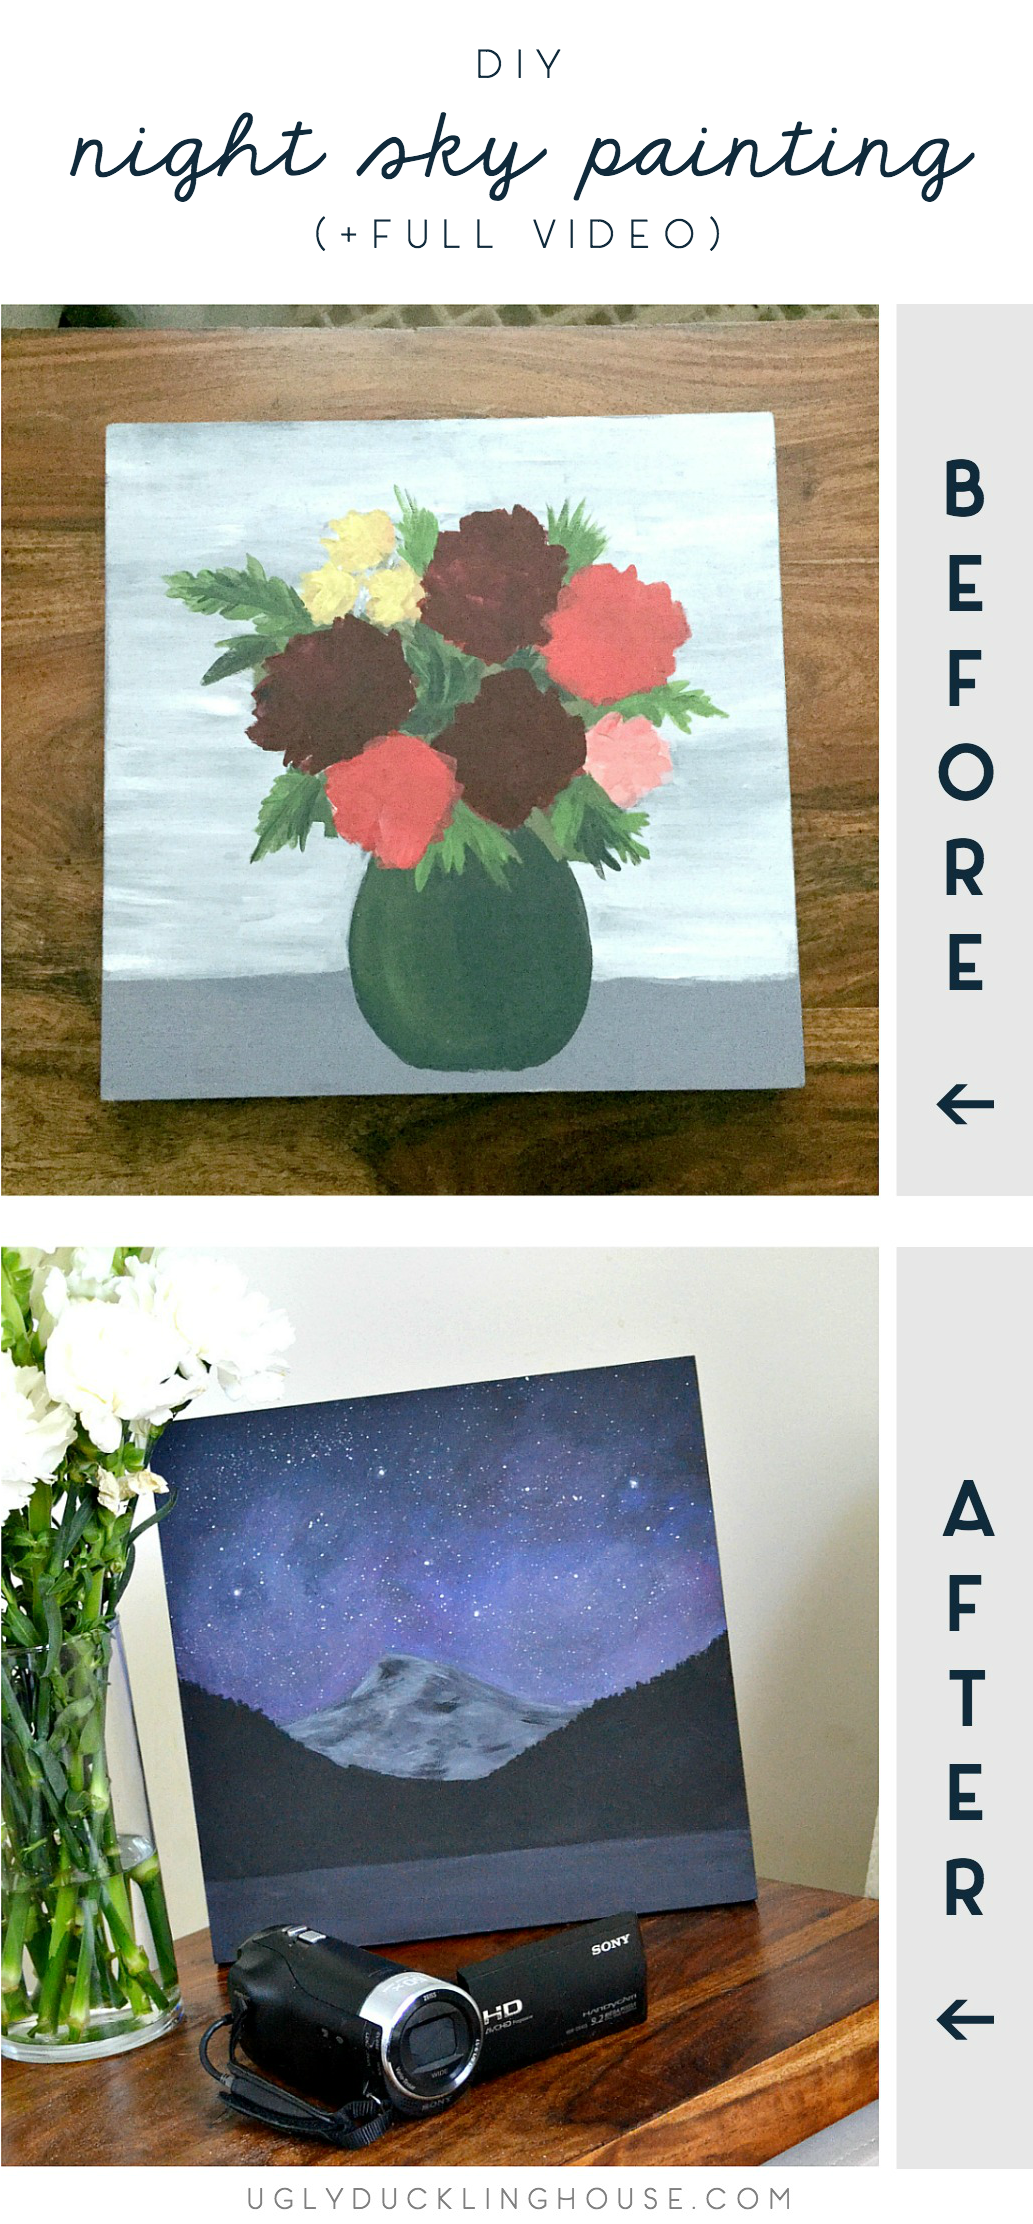 diy night sky mountain painting - before and after - full video